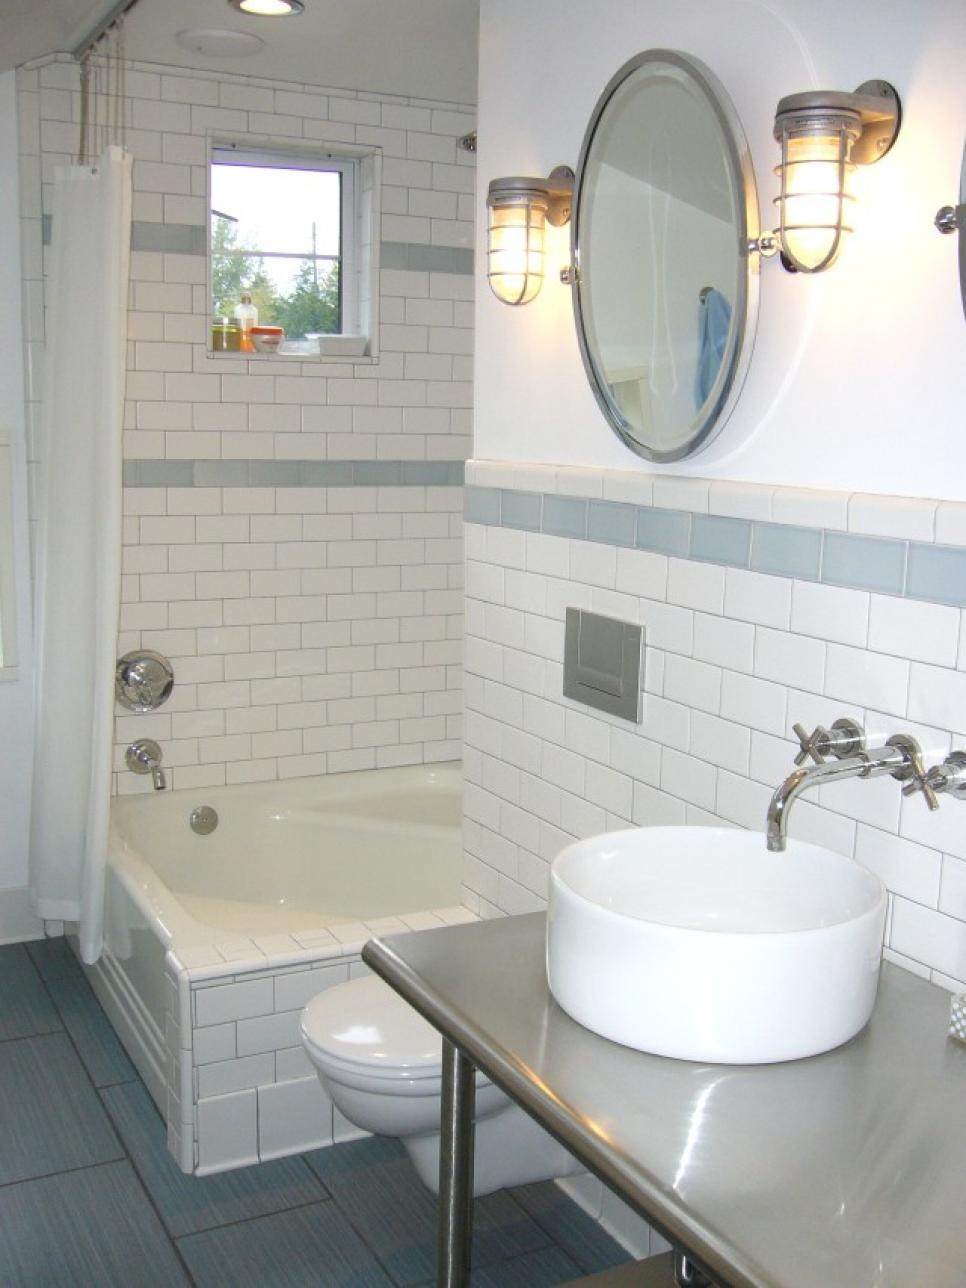 Diy Bathroom Remodel Ideas beautiful bathroom redos on a budget | diy